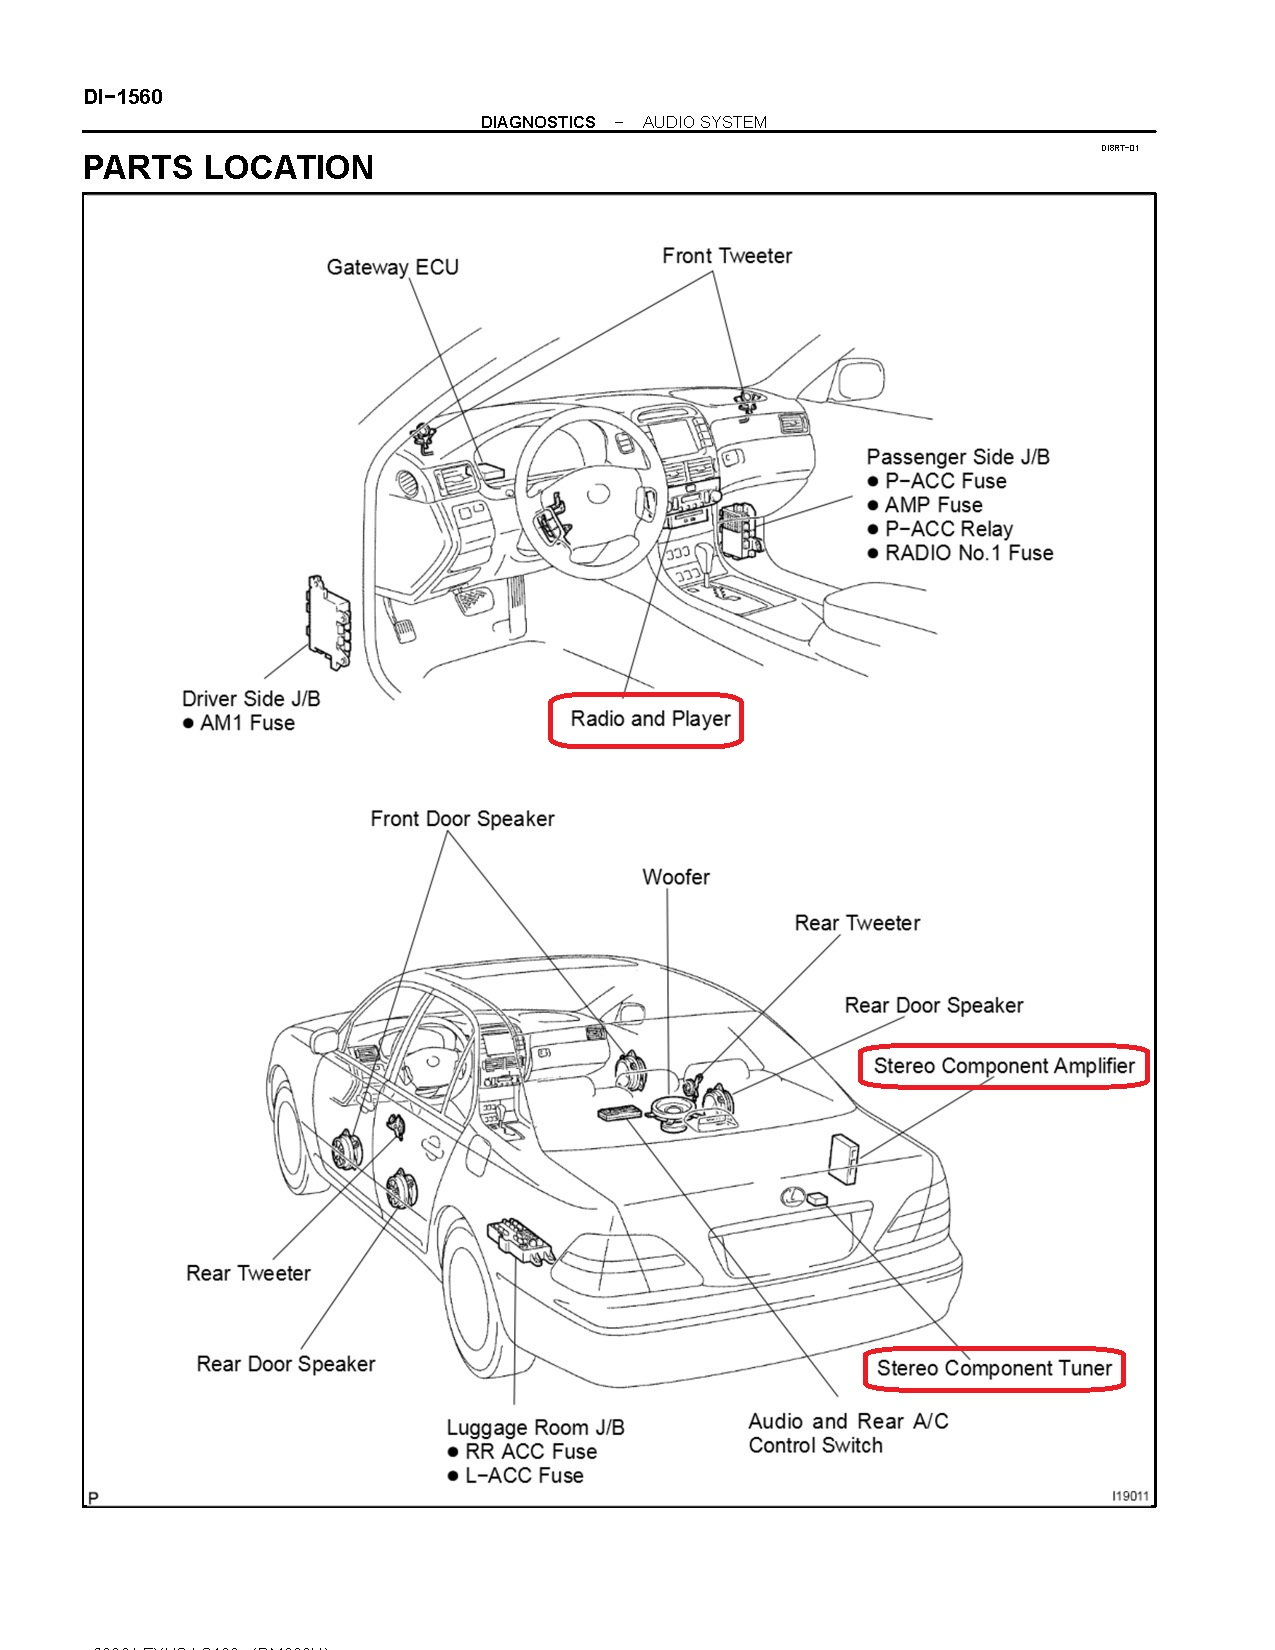 Wiring Diagram For 98 Lexus Gs400 Radio